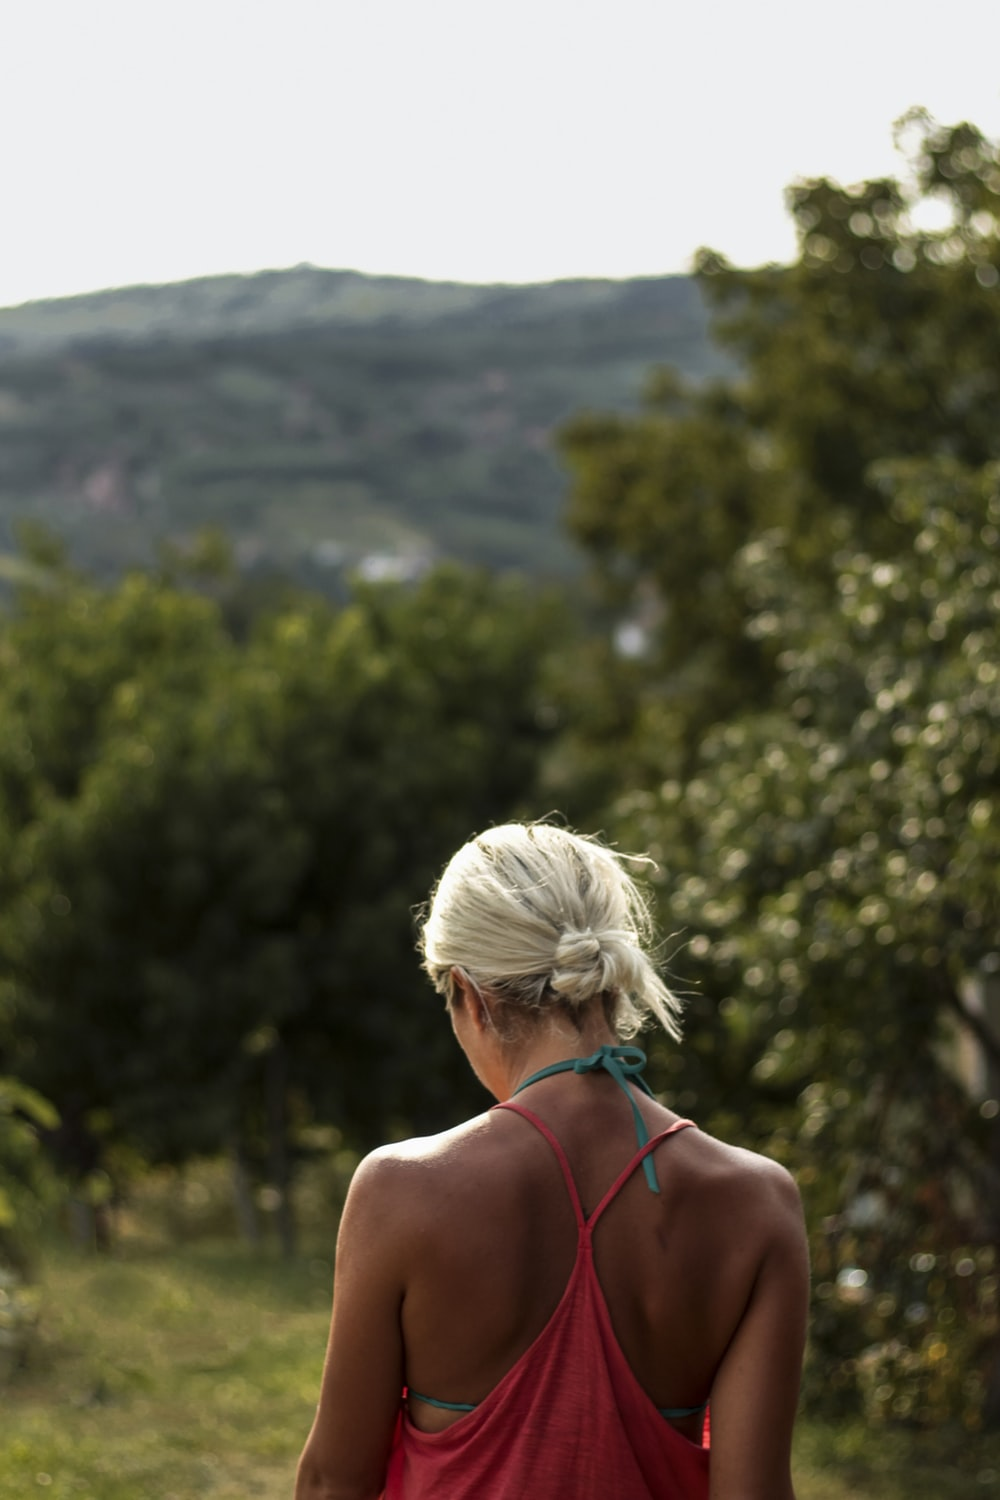 woman wearing pink tank top standing in front of green mountains